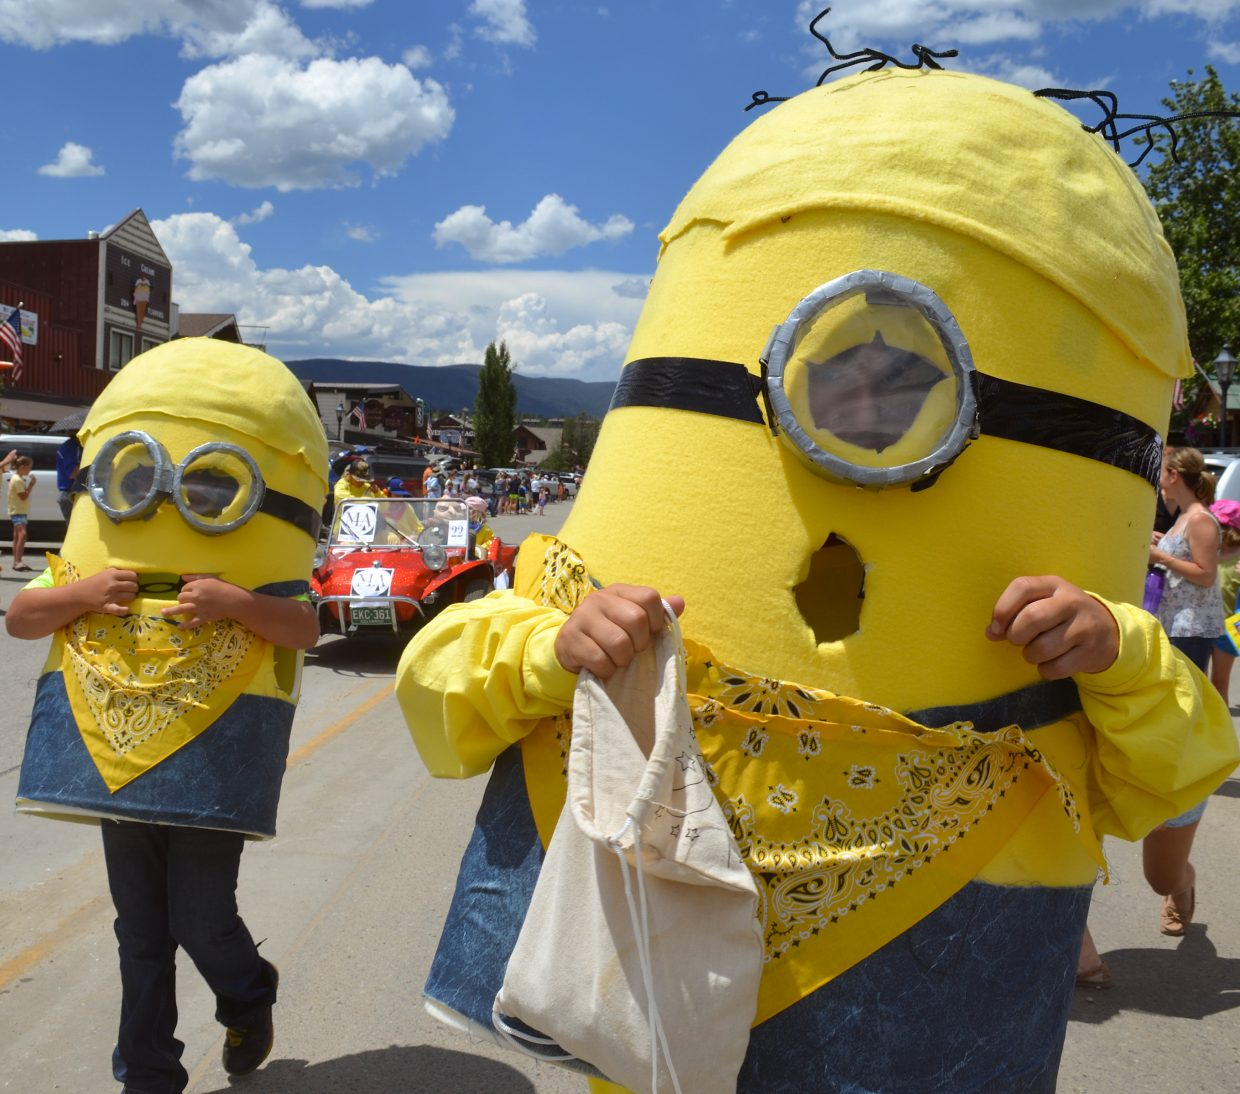 Munn Architecture's Munnions, a riff on the Minions from the popular movie Despicable Me, were handing out candy to youngsters during the parade.